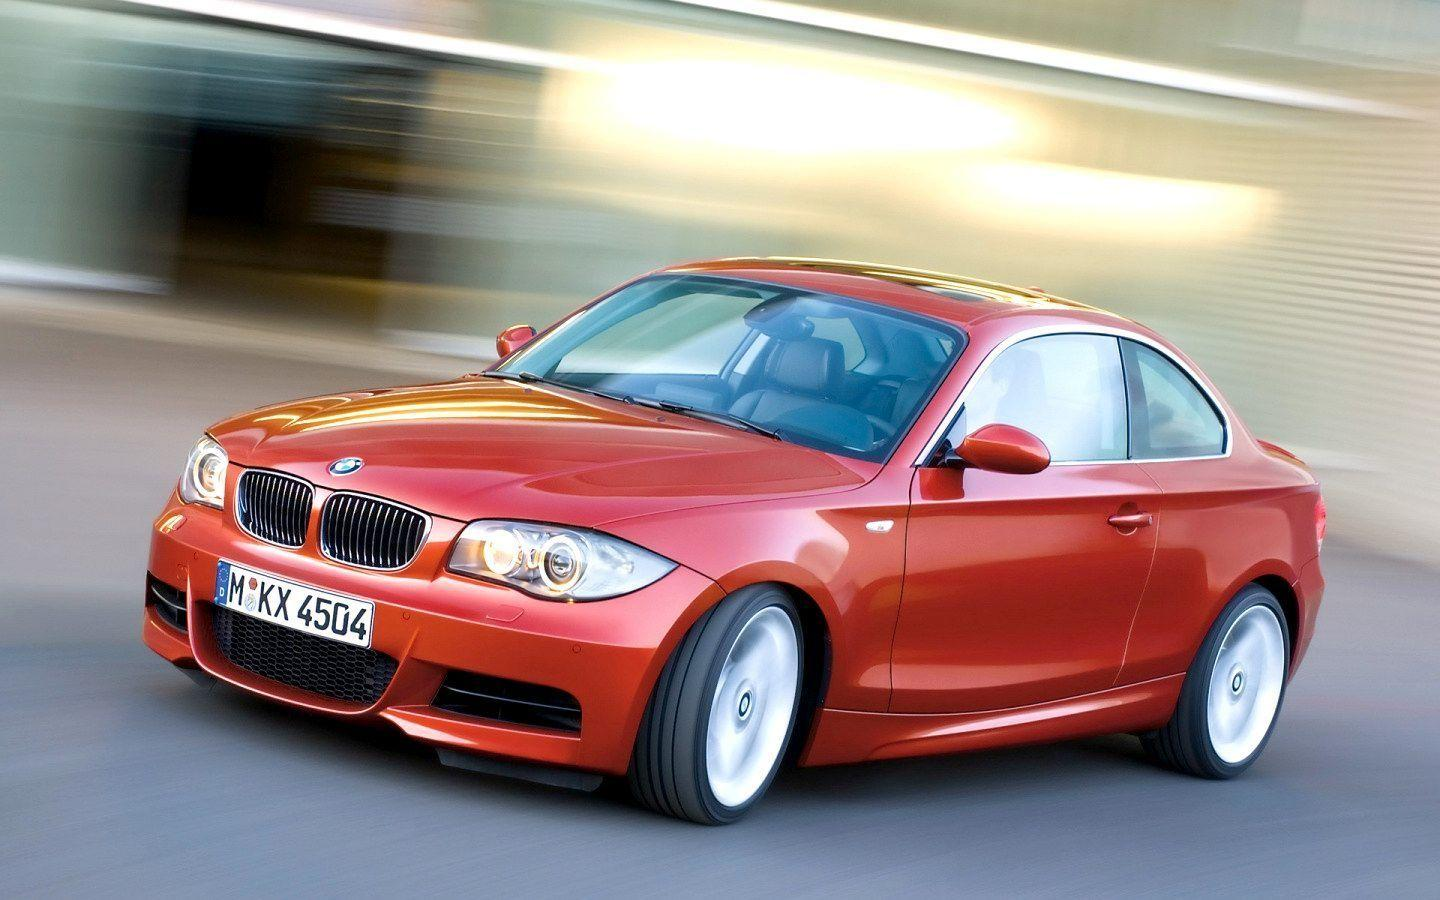 2008 BMW 1 Series Coupe Wallpaper 09 - 1440x900